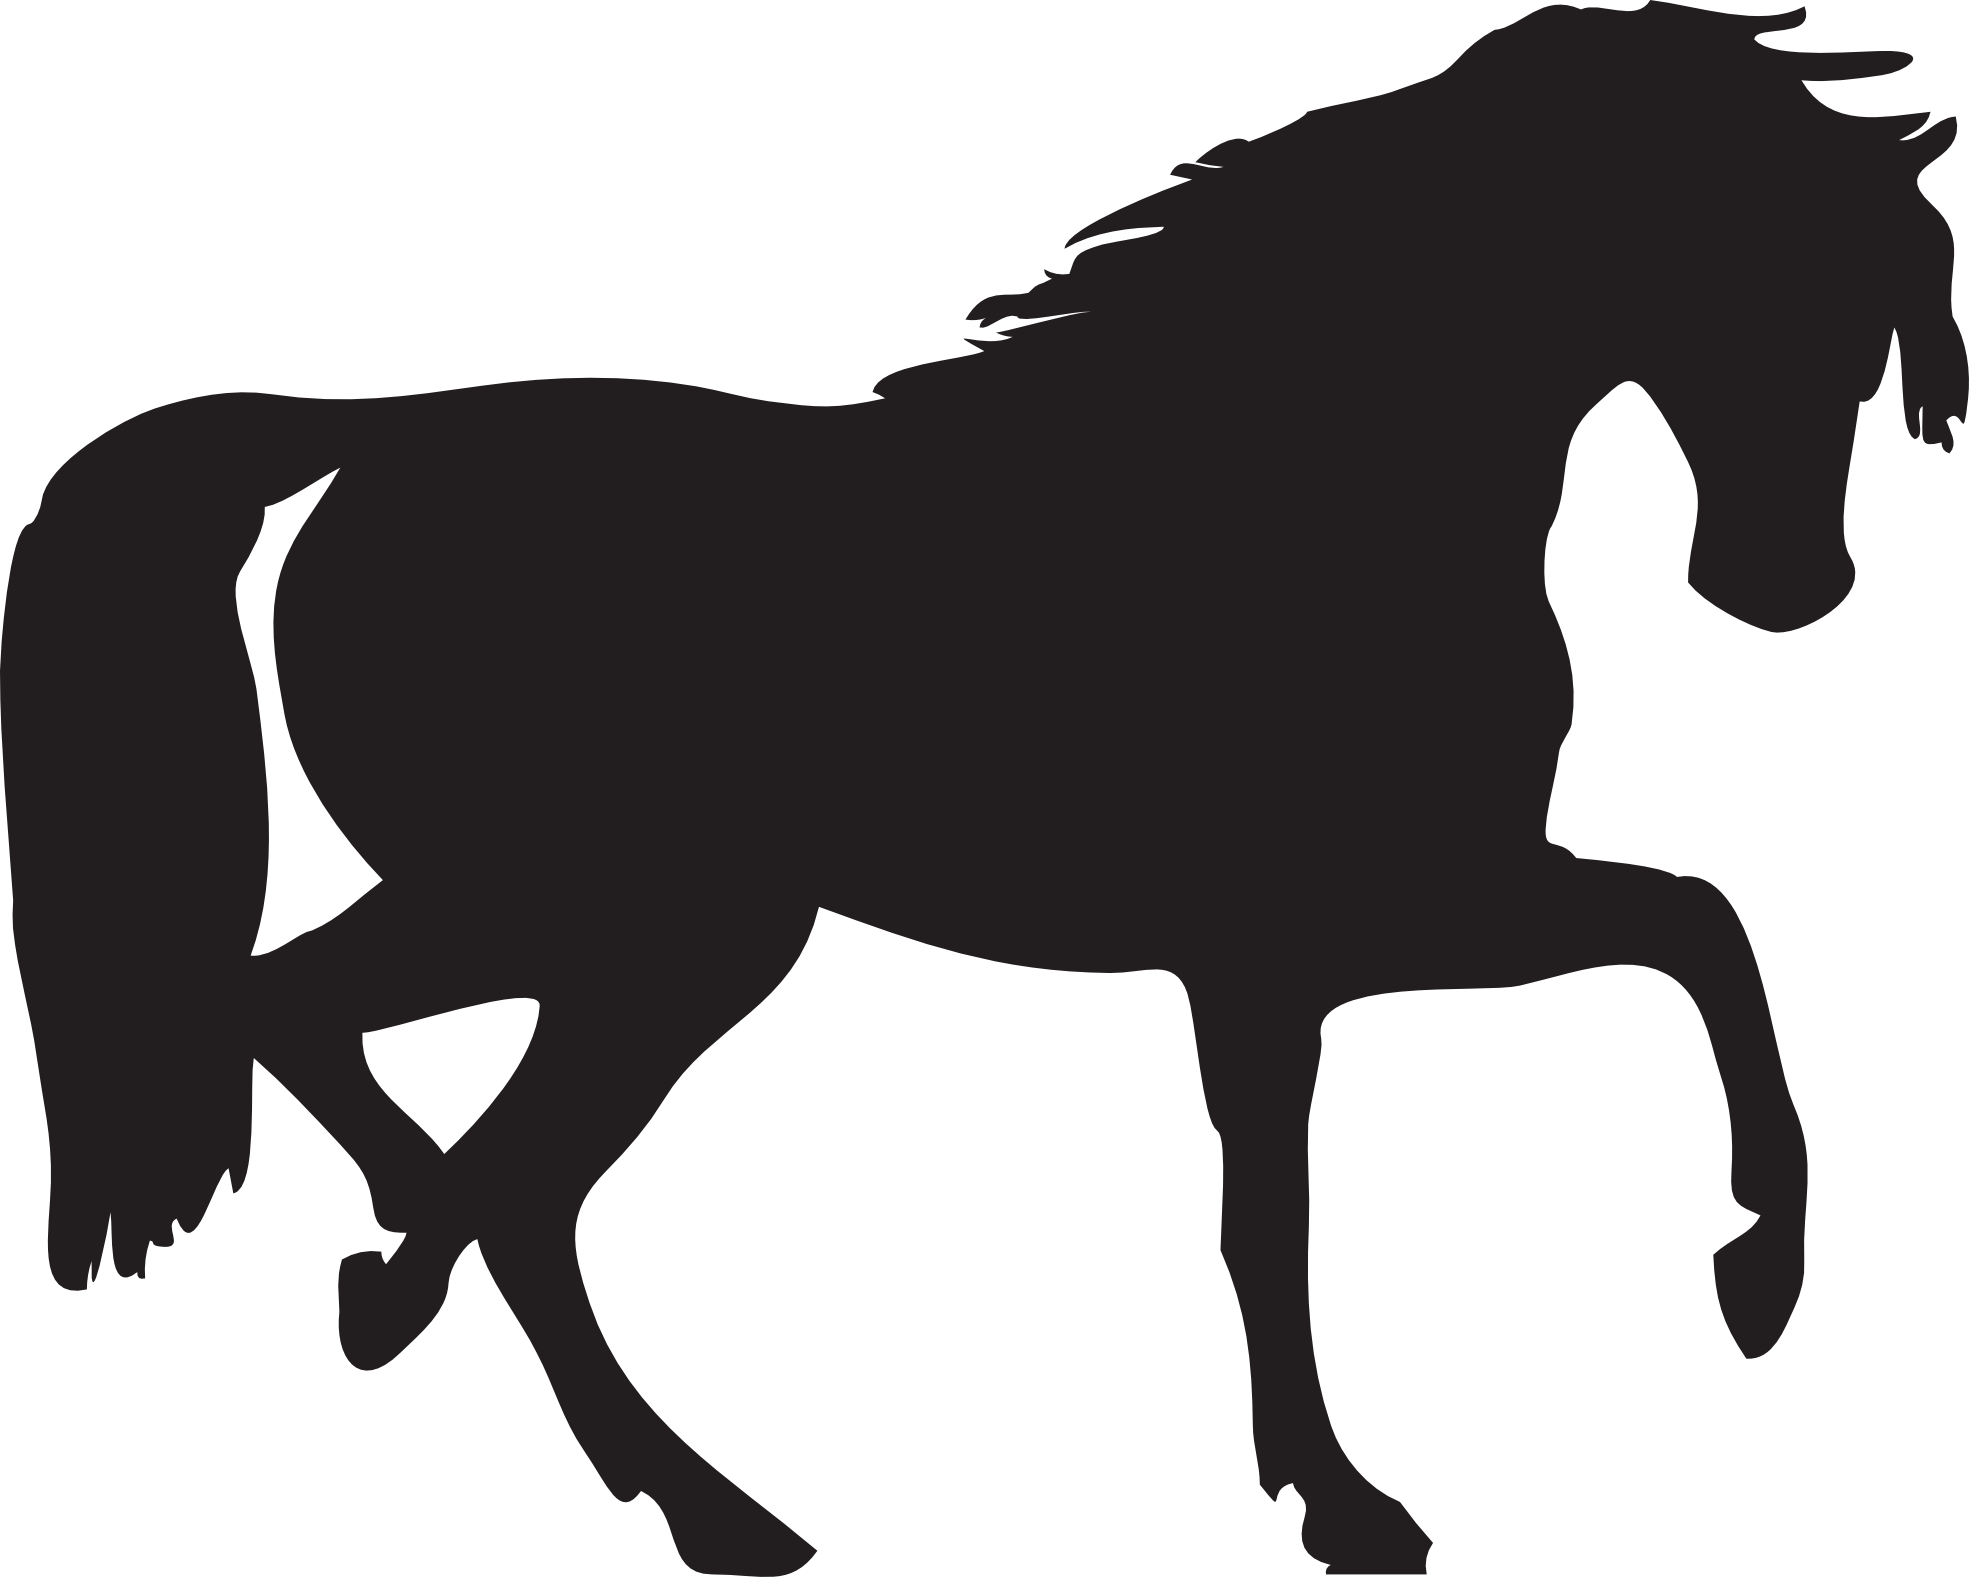 Ladybug clipart silhouette. Horse two isolated stock